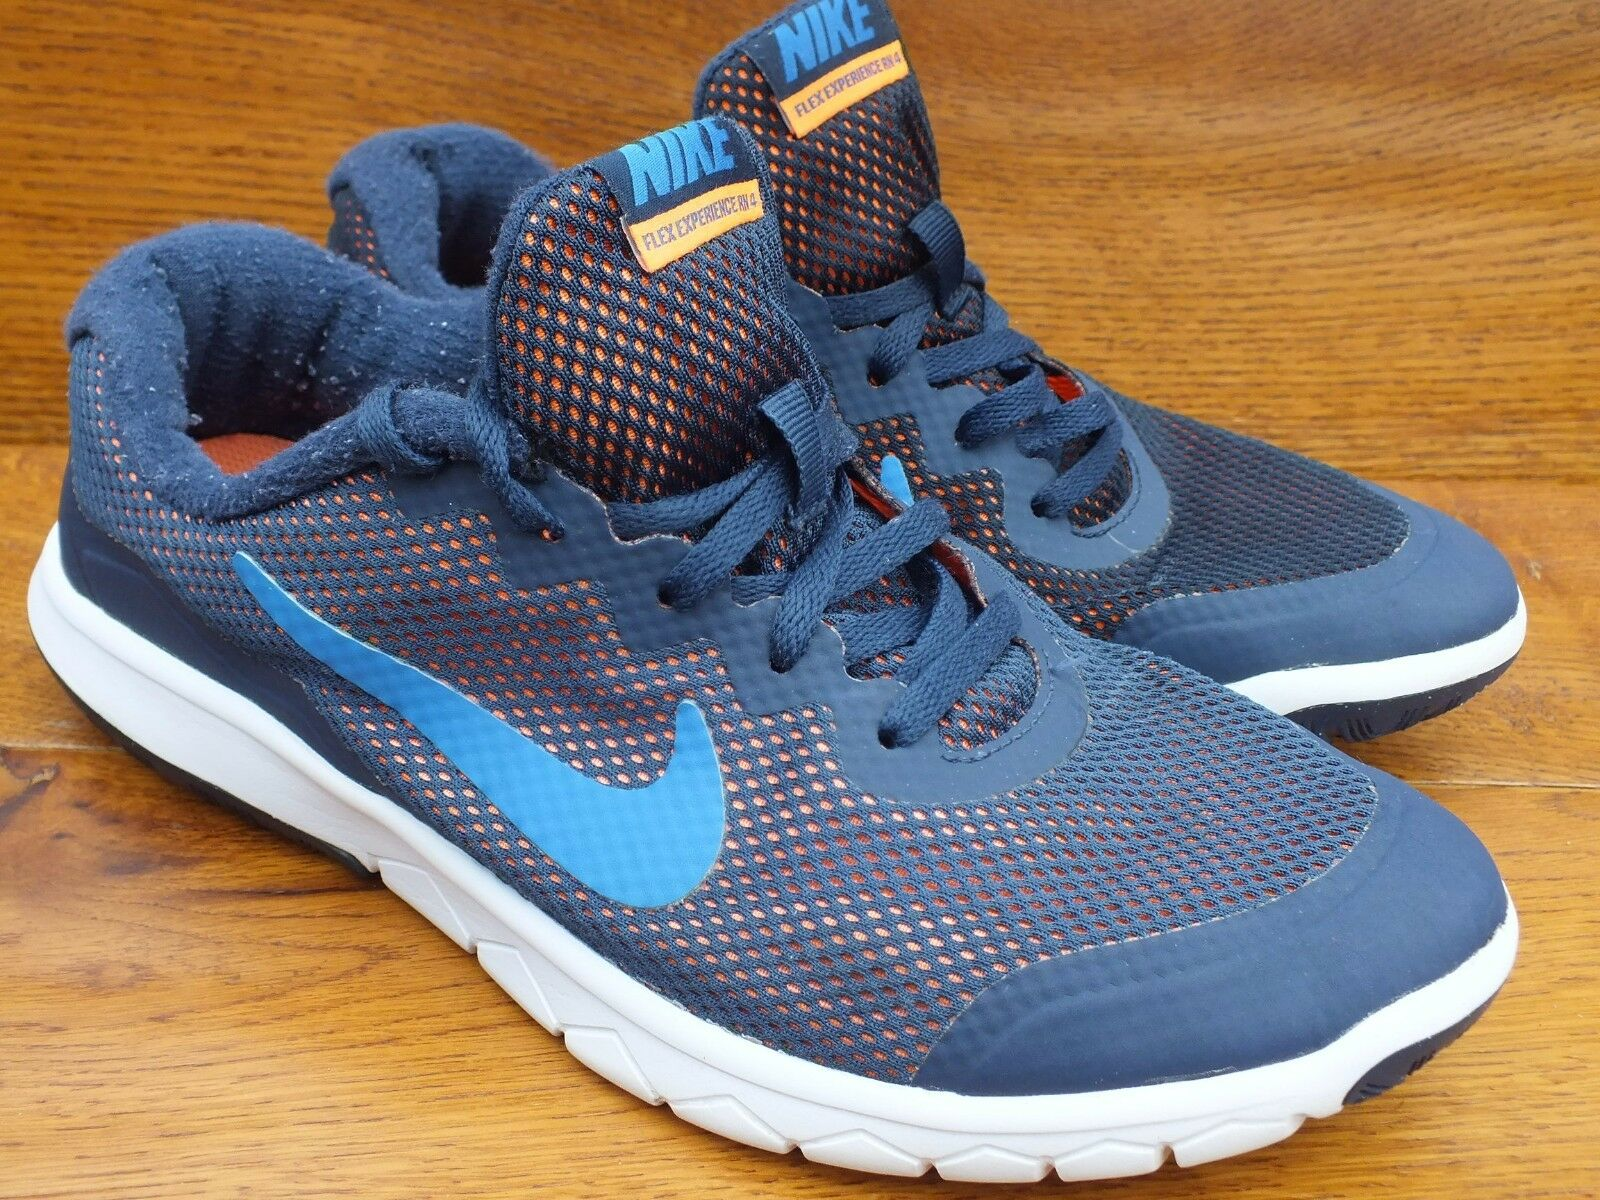 Nike Flex Experience Running Shoes Trainers Comfortable Wild casual shoes